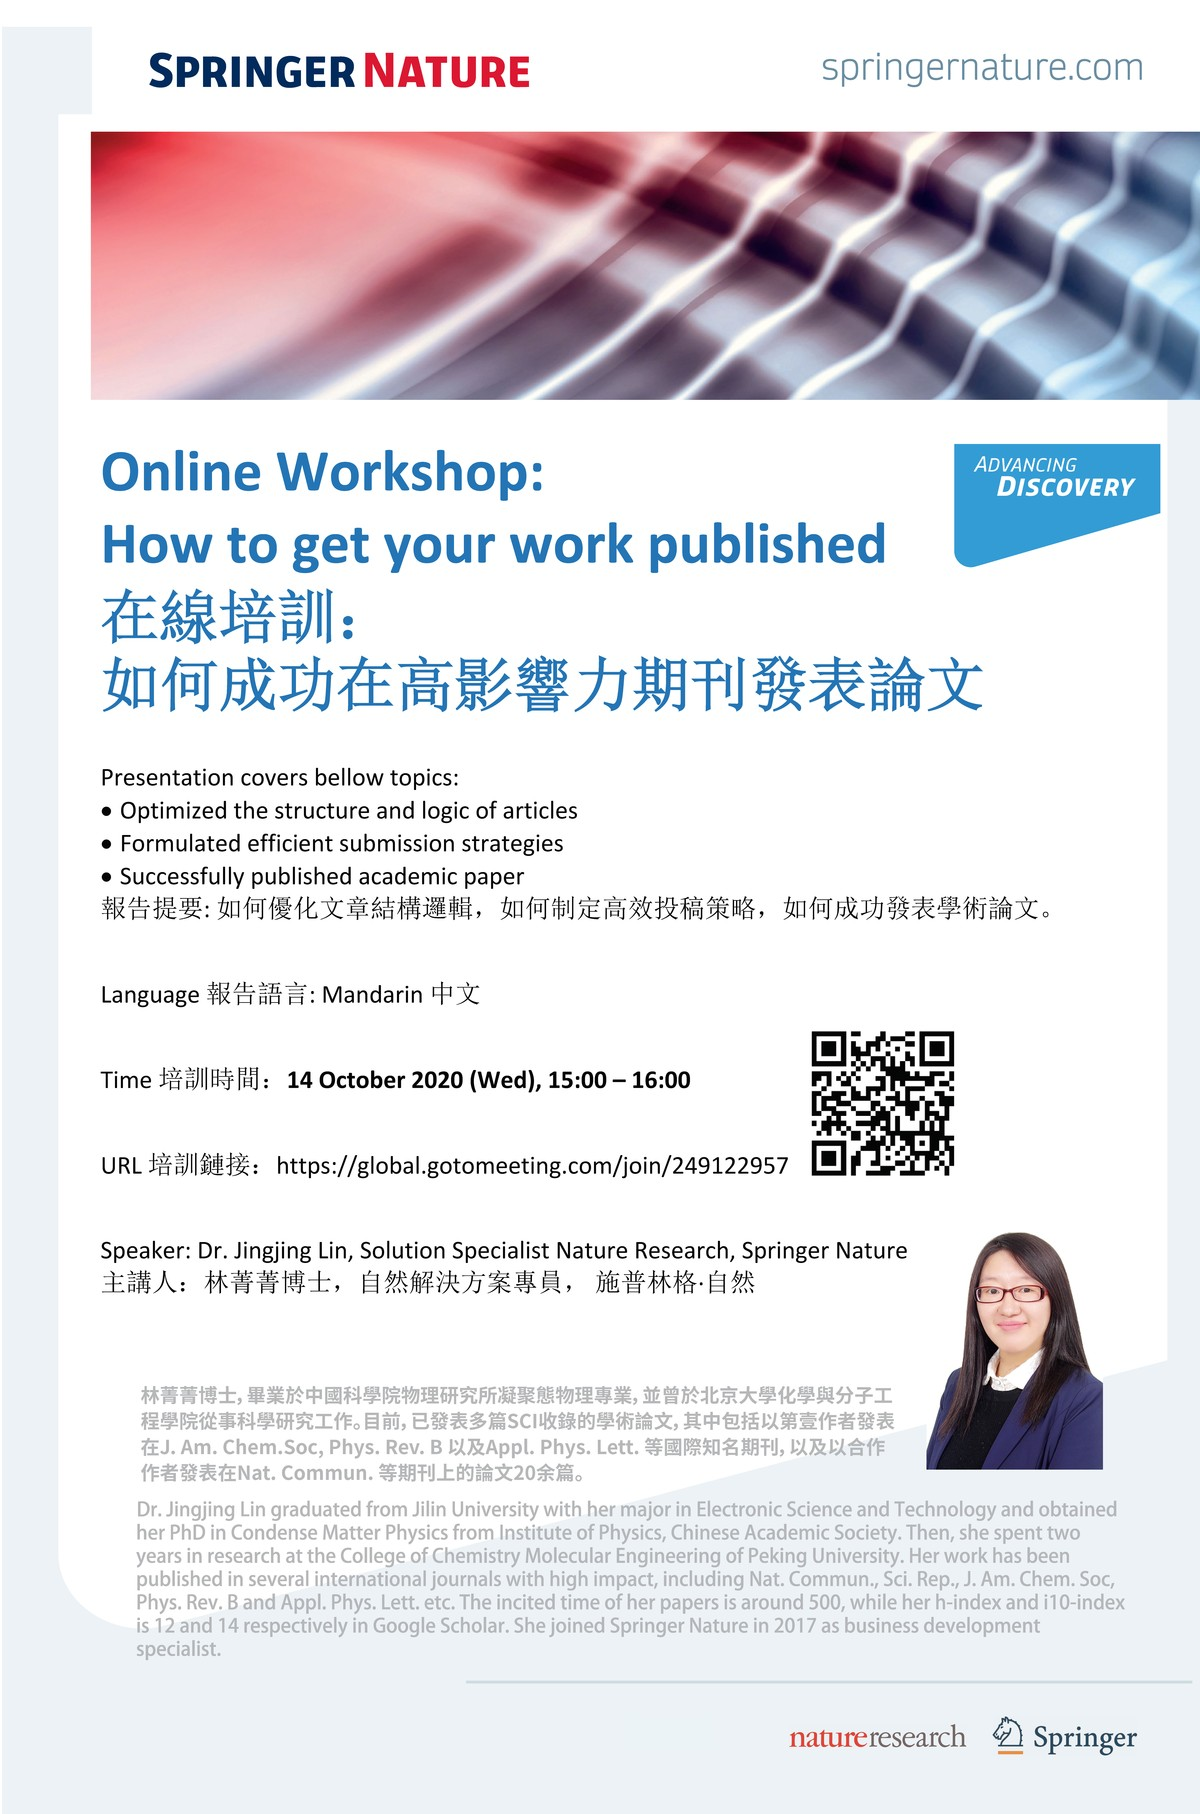 Springer Nature Online Workshop: How to Get Your Work Published